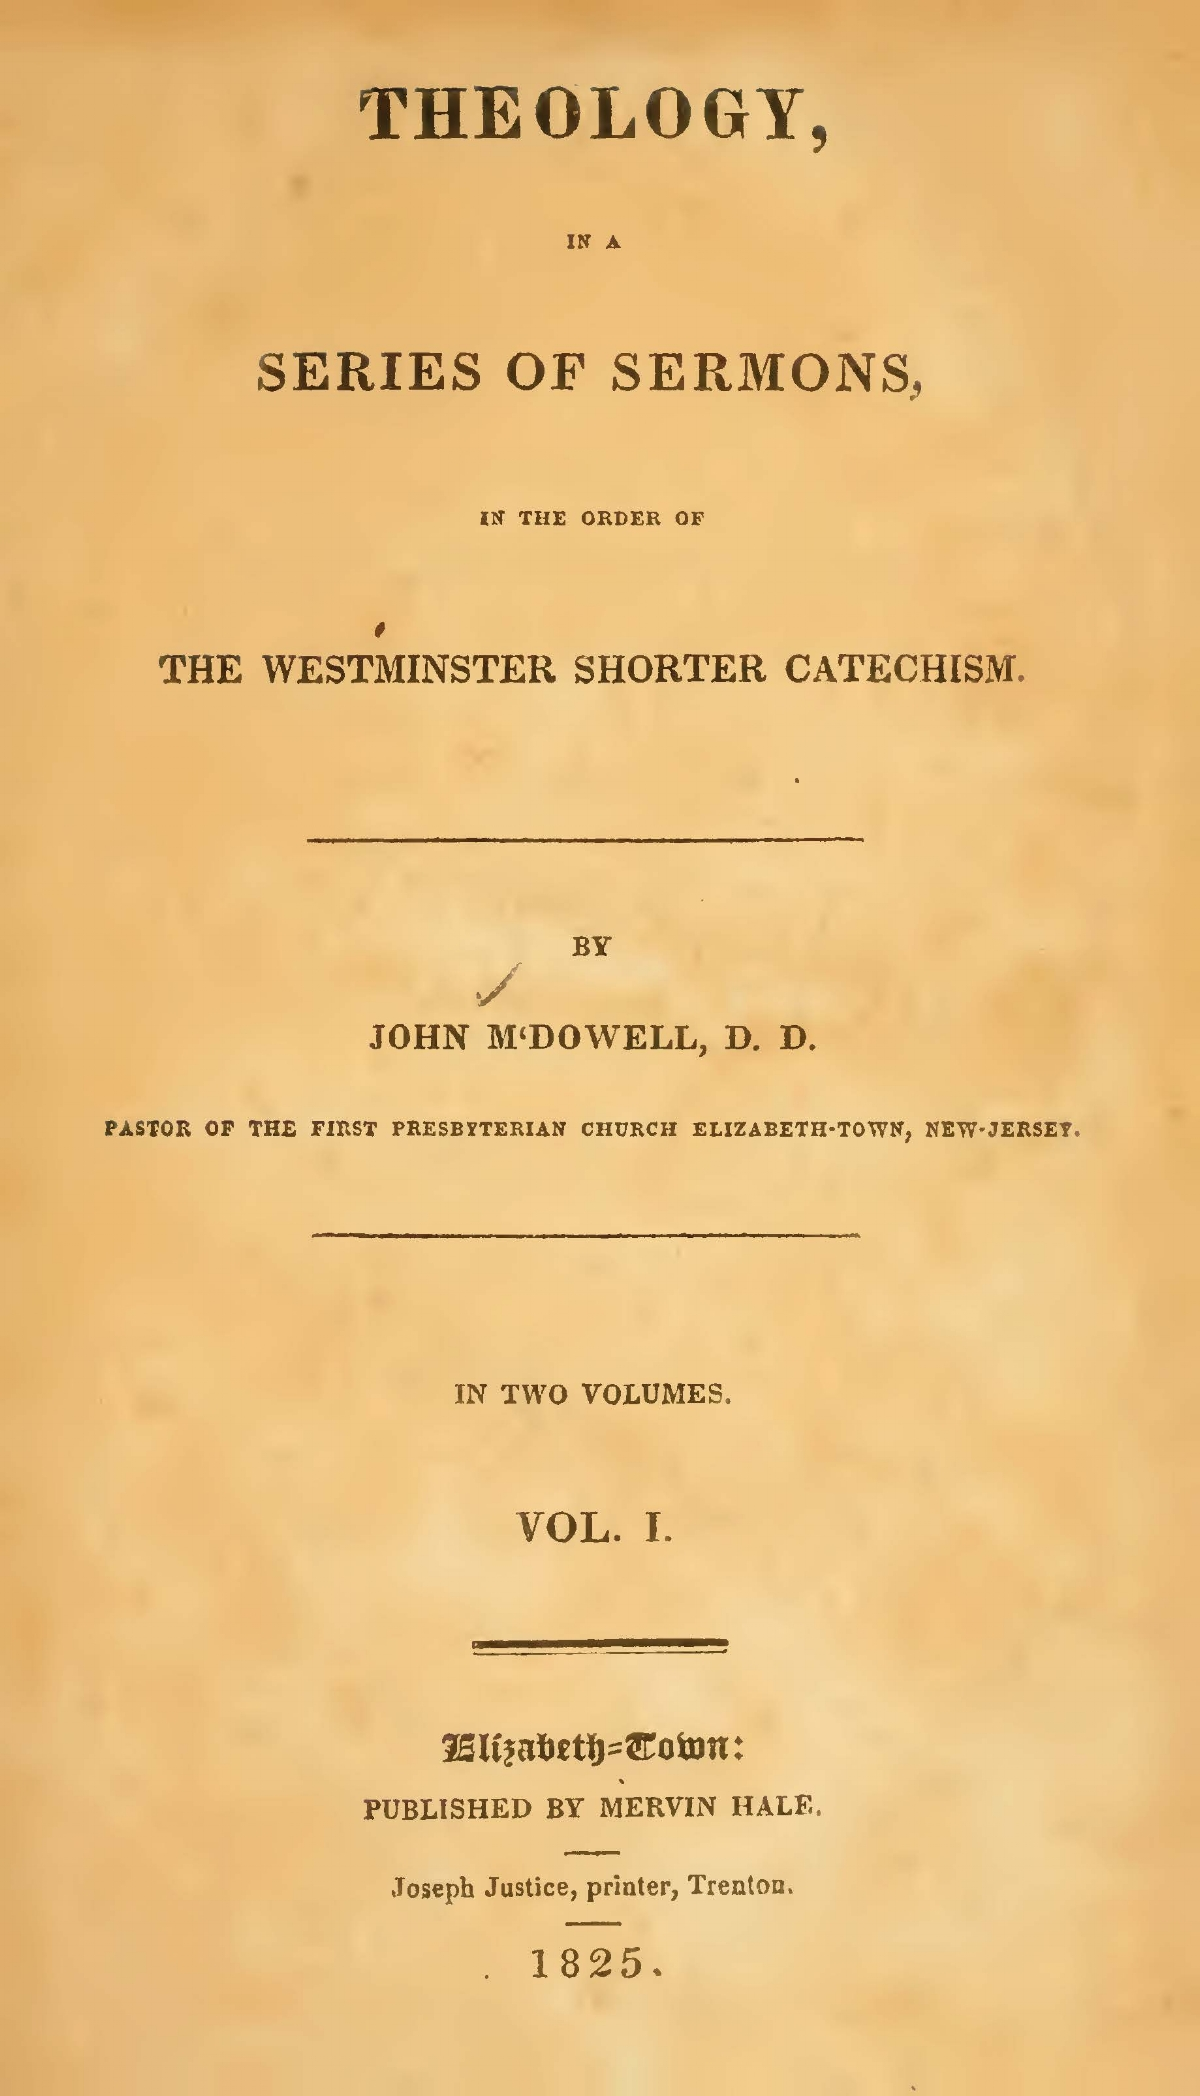 McDowell, John, Theology, in a Series of Sermons in the Order of the Westminster Shorter Catechism, Vol. 1 Title Page.jpg